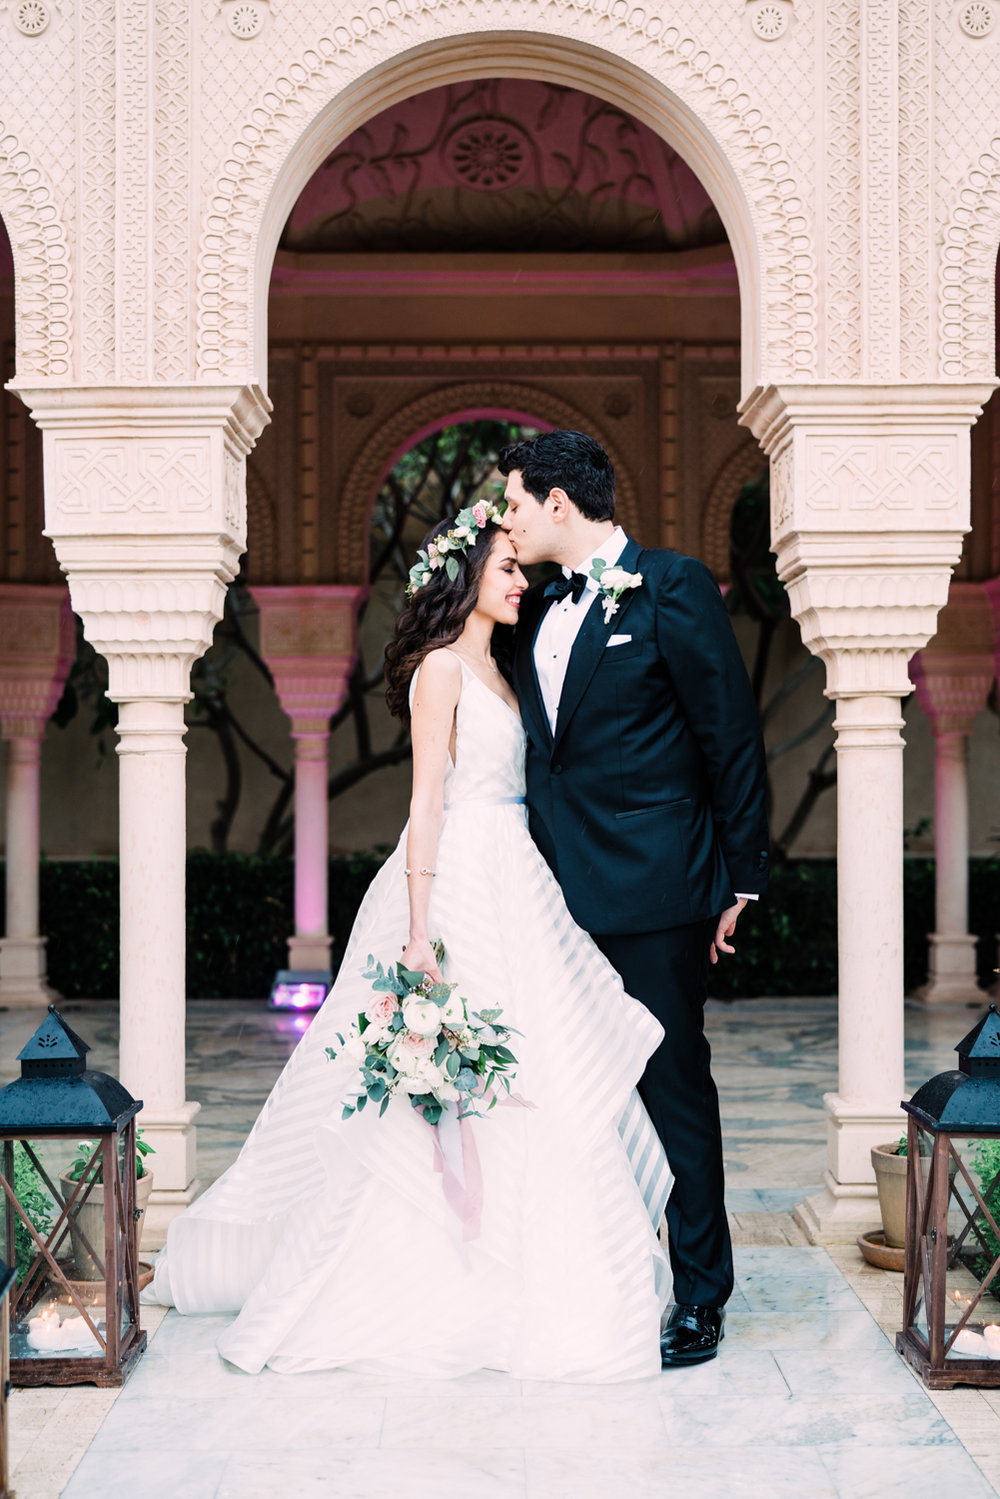 joem_aldea_best_wedding_venues_in_dubai